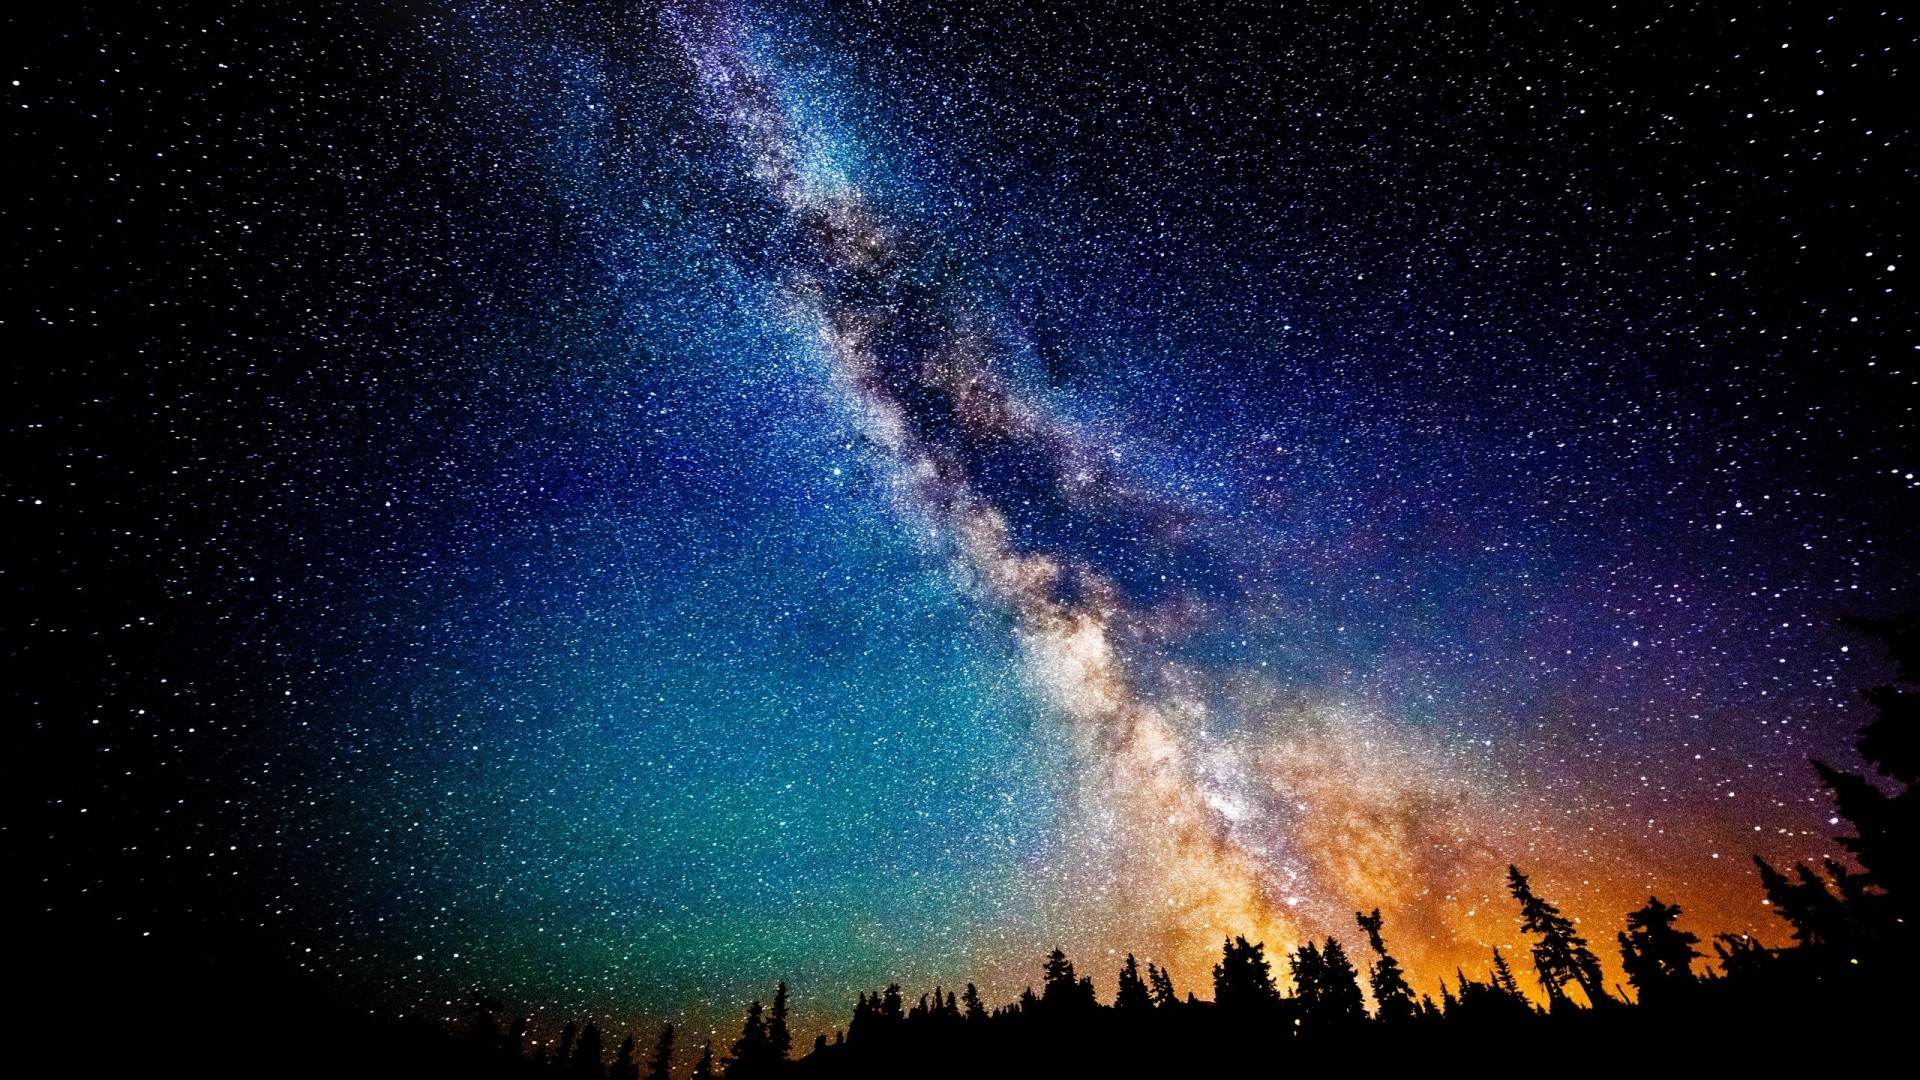 Milky Way Wallpaper 1920x1080 71 Images